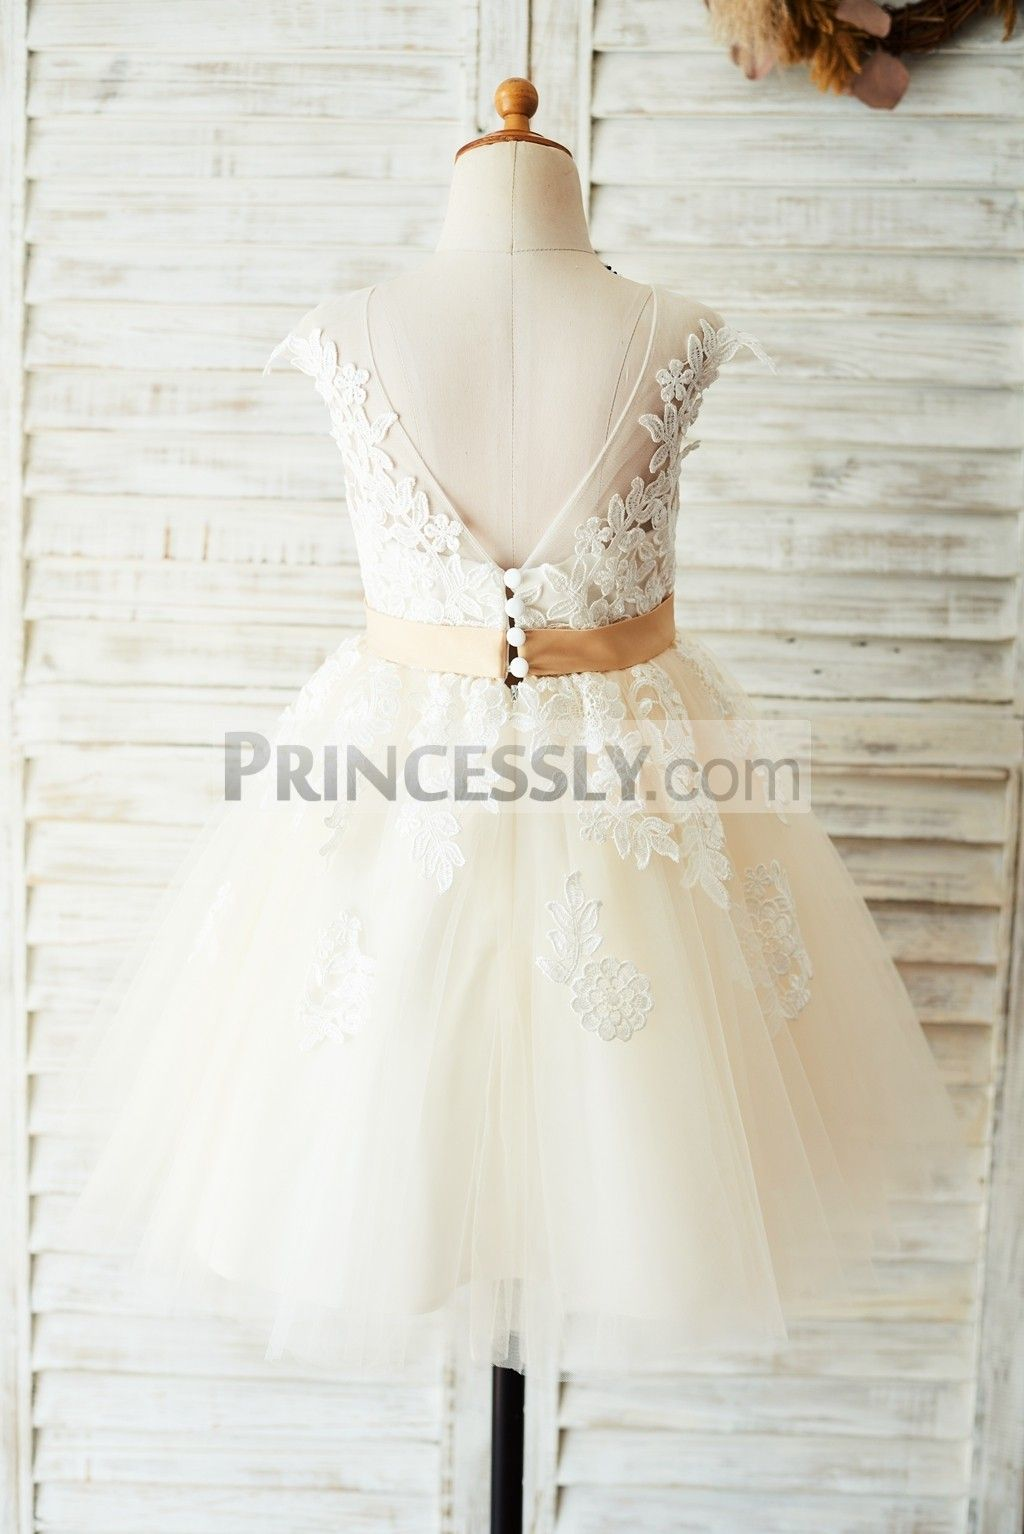 Dress for wedding party for girl  Ivory Lace Champagne Tulle Wedding Party Flower Girl Dress with V